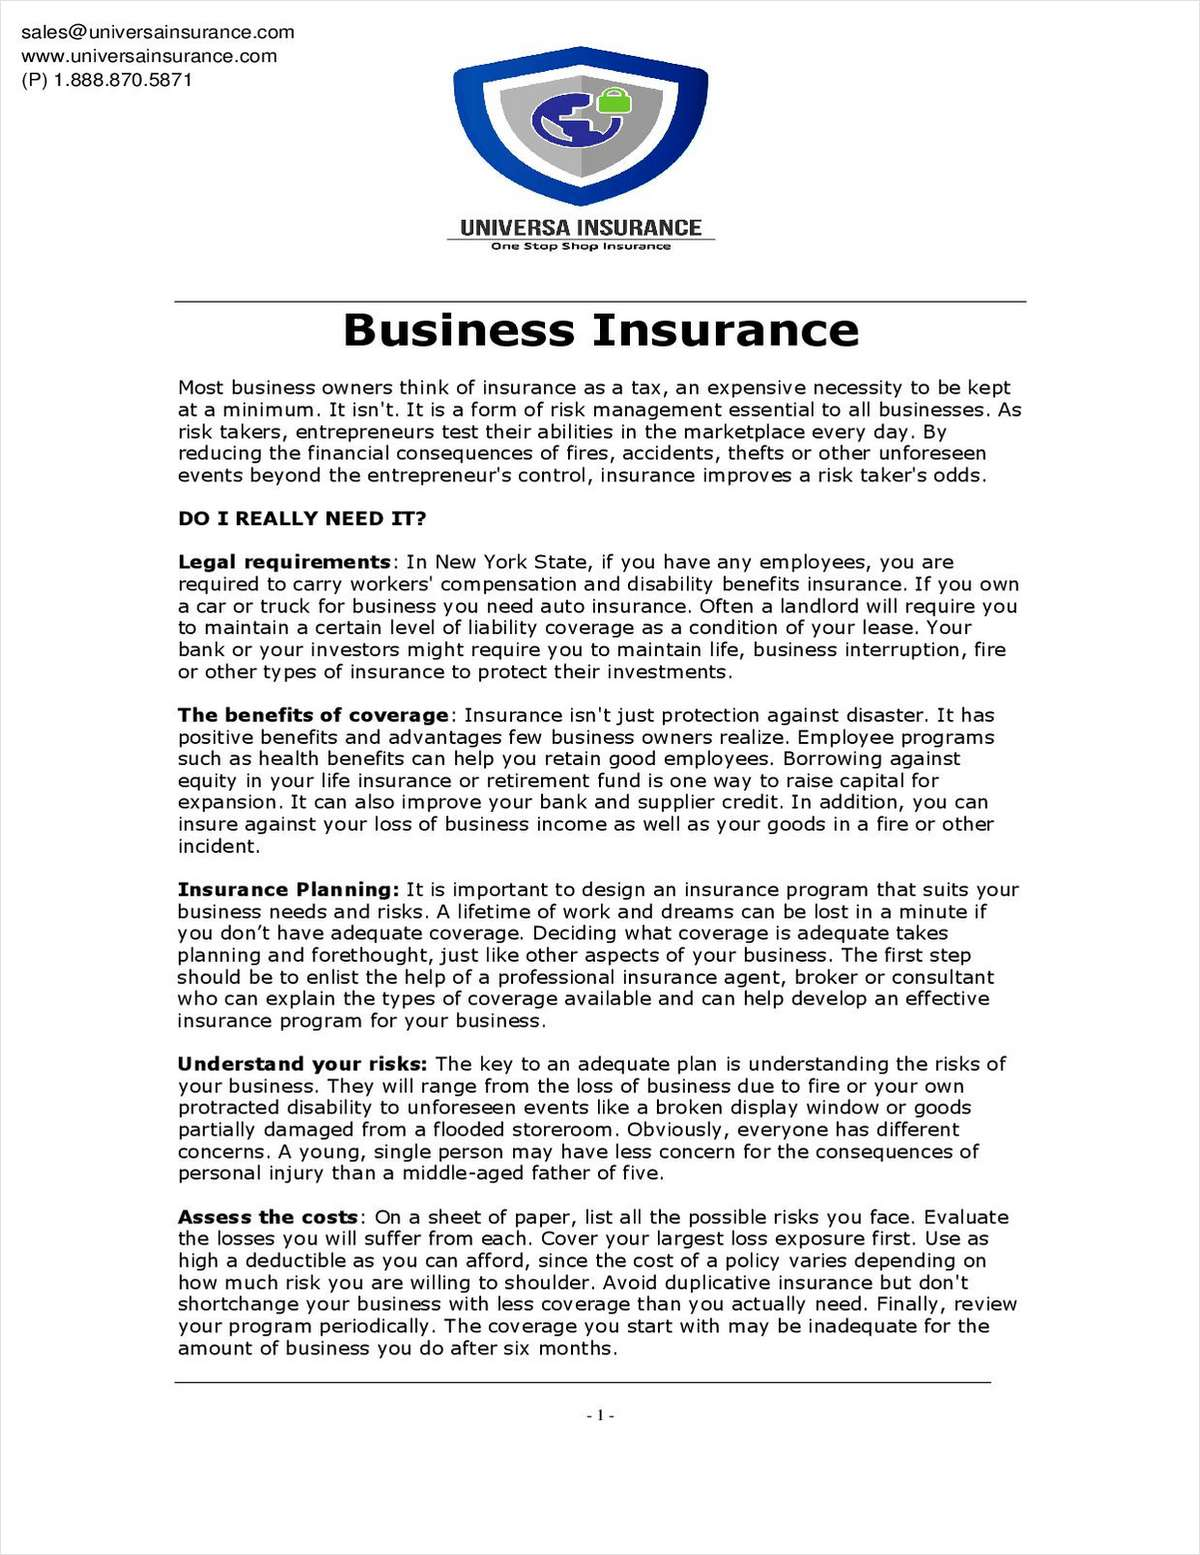 Tips for Choosing the most appropiate insurance coverages for your business.